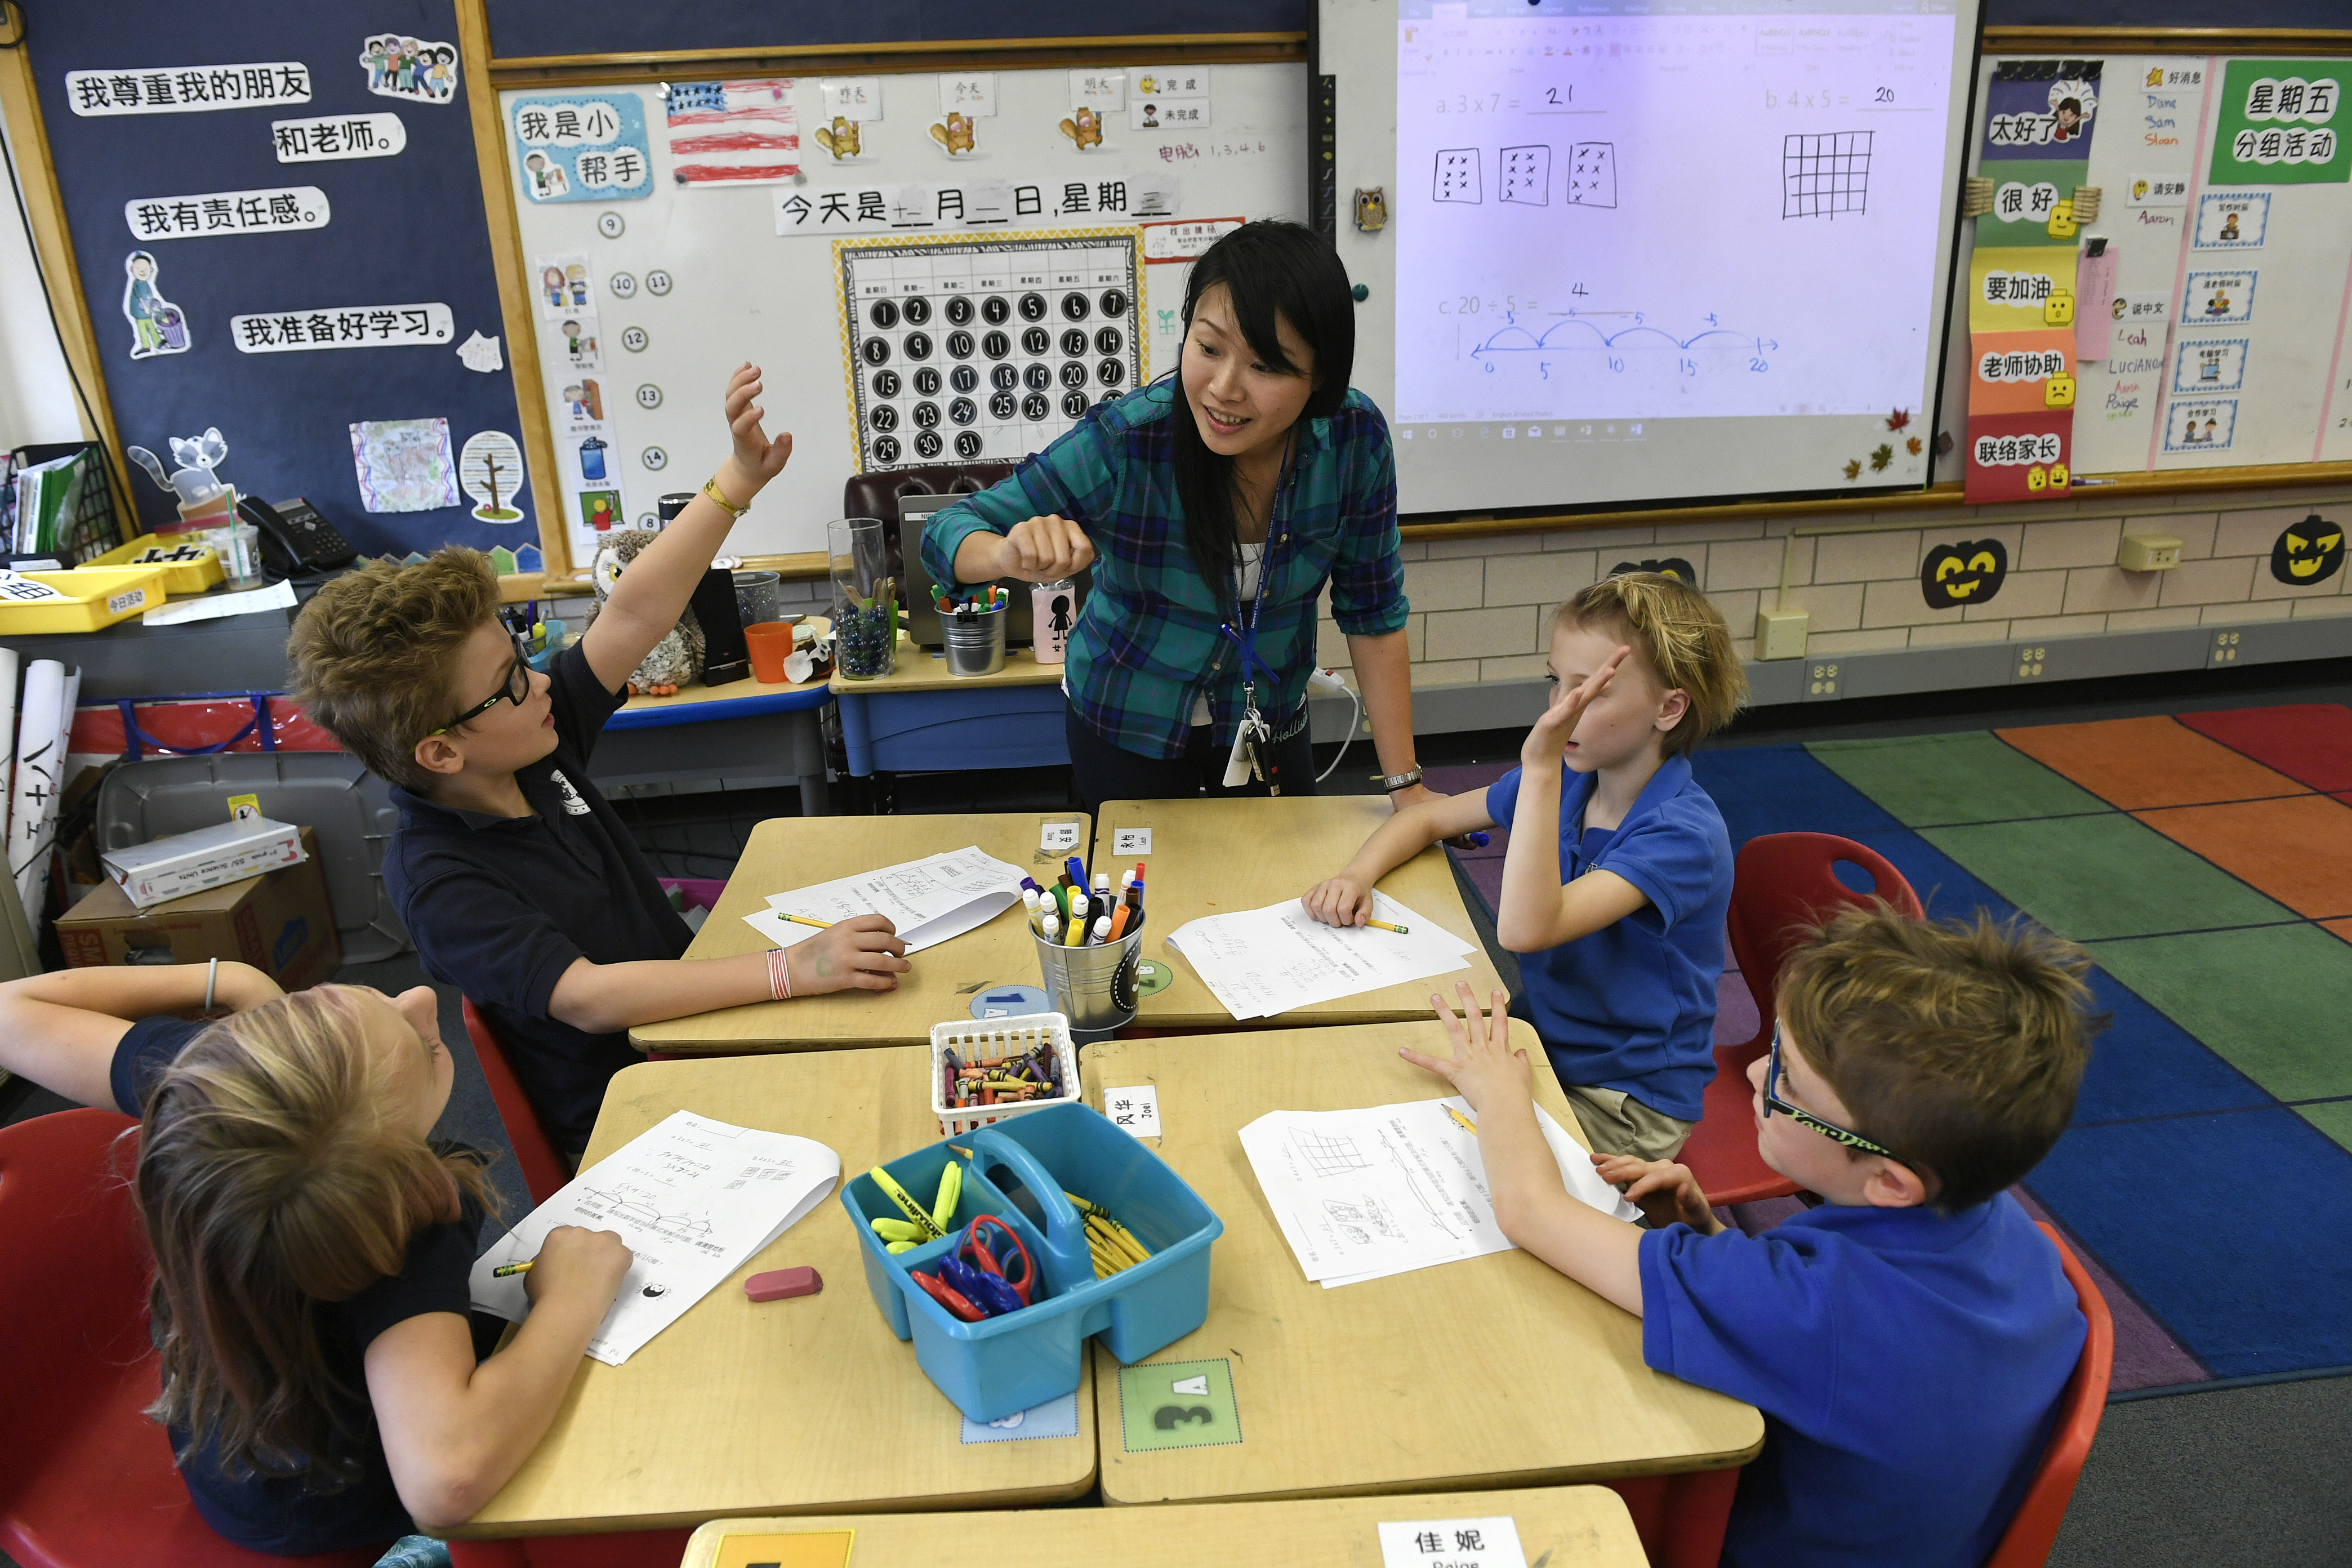 Chinese teacher Yu-Hsin Lien, speaking only in Chinese, helps her 3rd grade students with classwork at the Denver Language School on Nov. 1, 2017 in Denver.